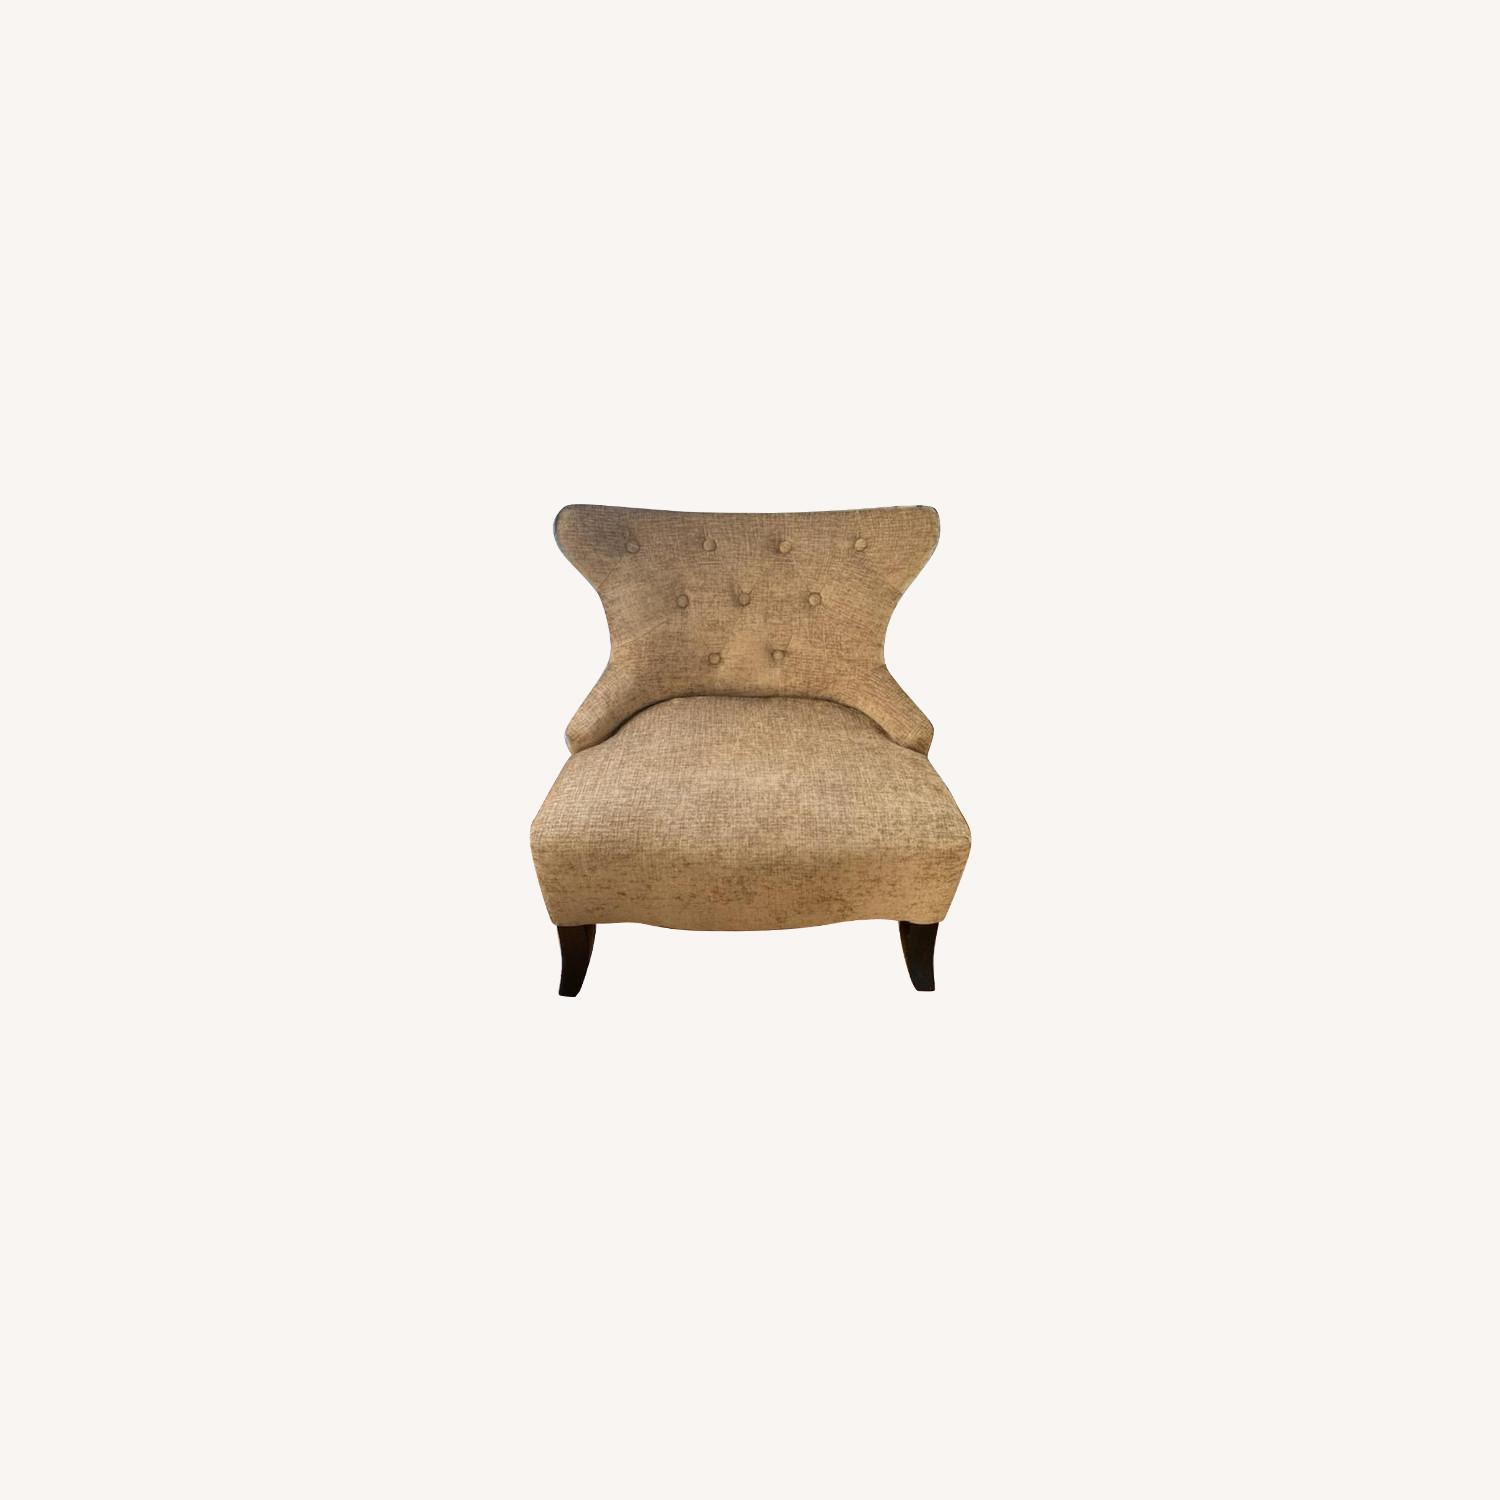 Pier 1 Imports Accent Chair - image-0